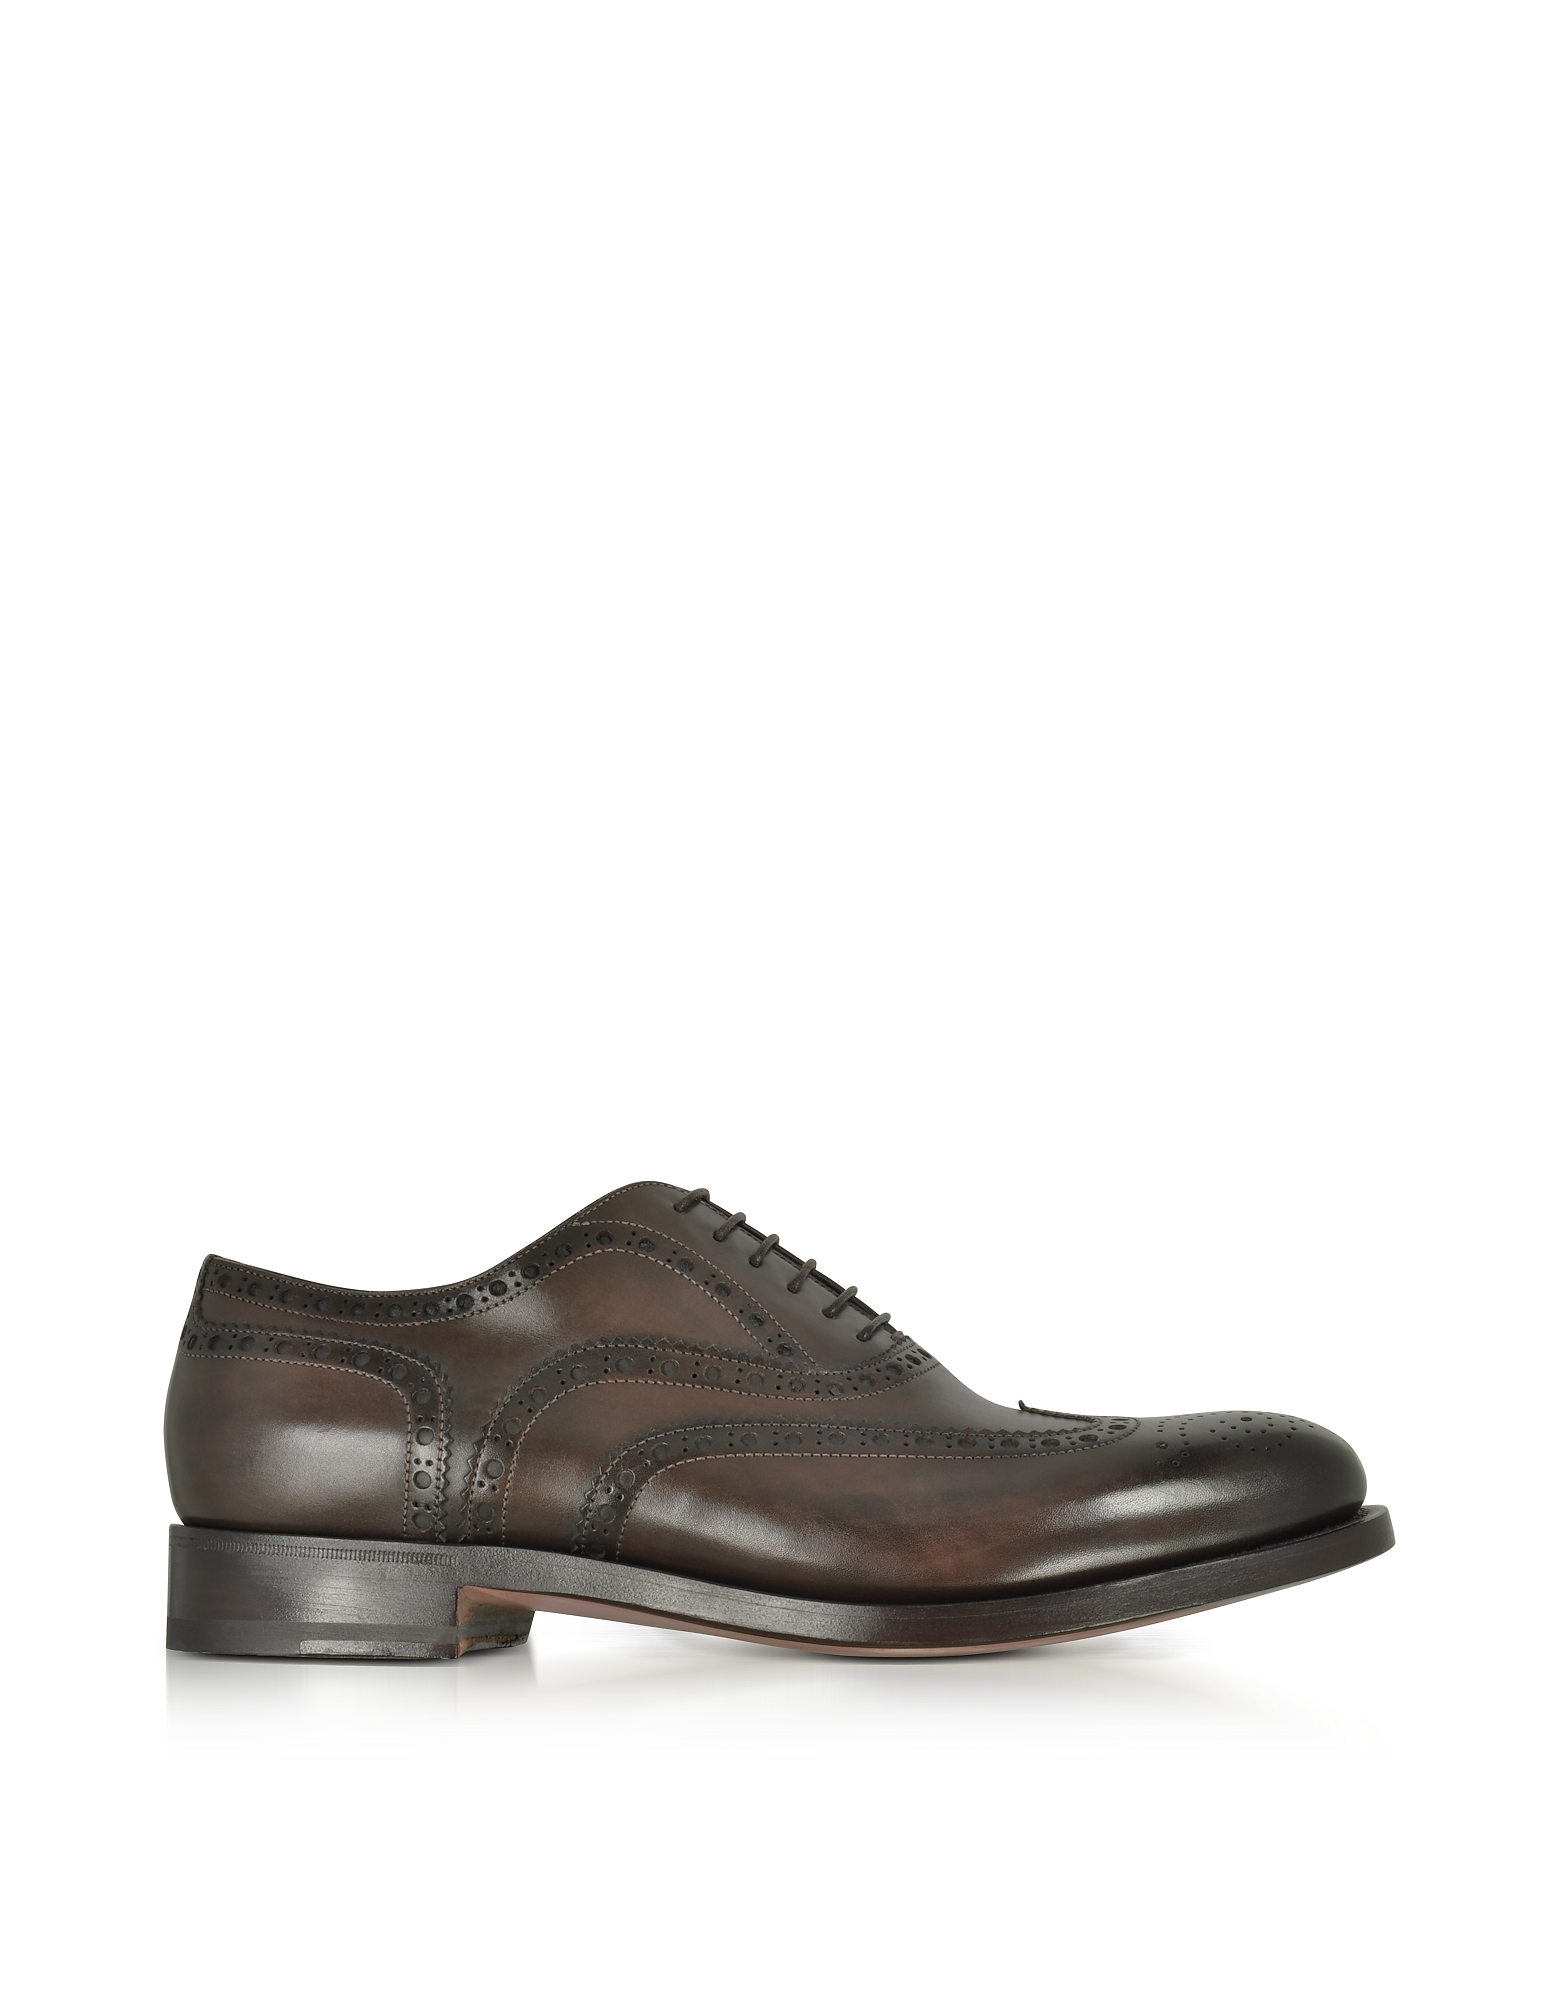 Santoni Shoes, Oscar Dark Brown Leather Wingtip Derby Shoes